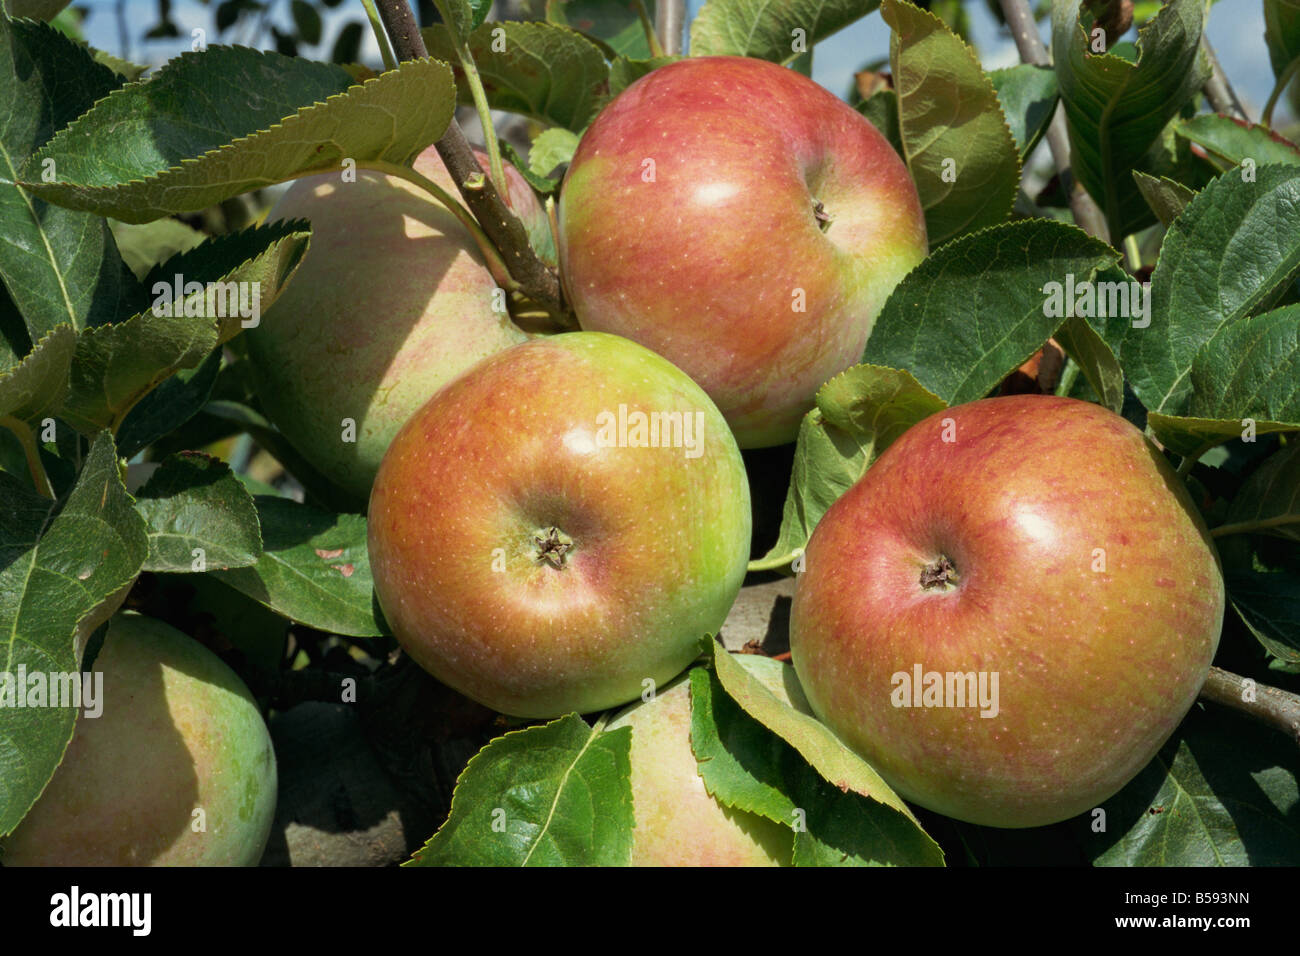 Close up of Ontario apples on a tree in the Potager du Roi the Kings kitchen garden at the Chateau de Versailles - Stock Image